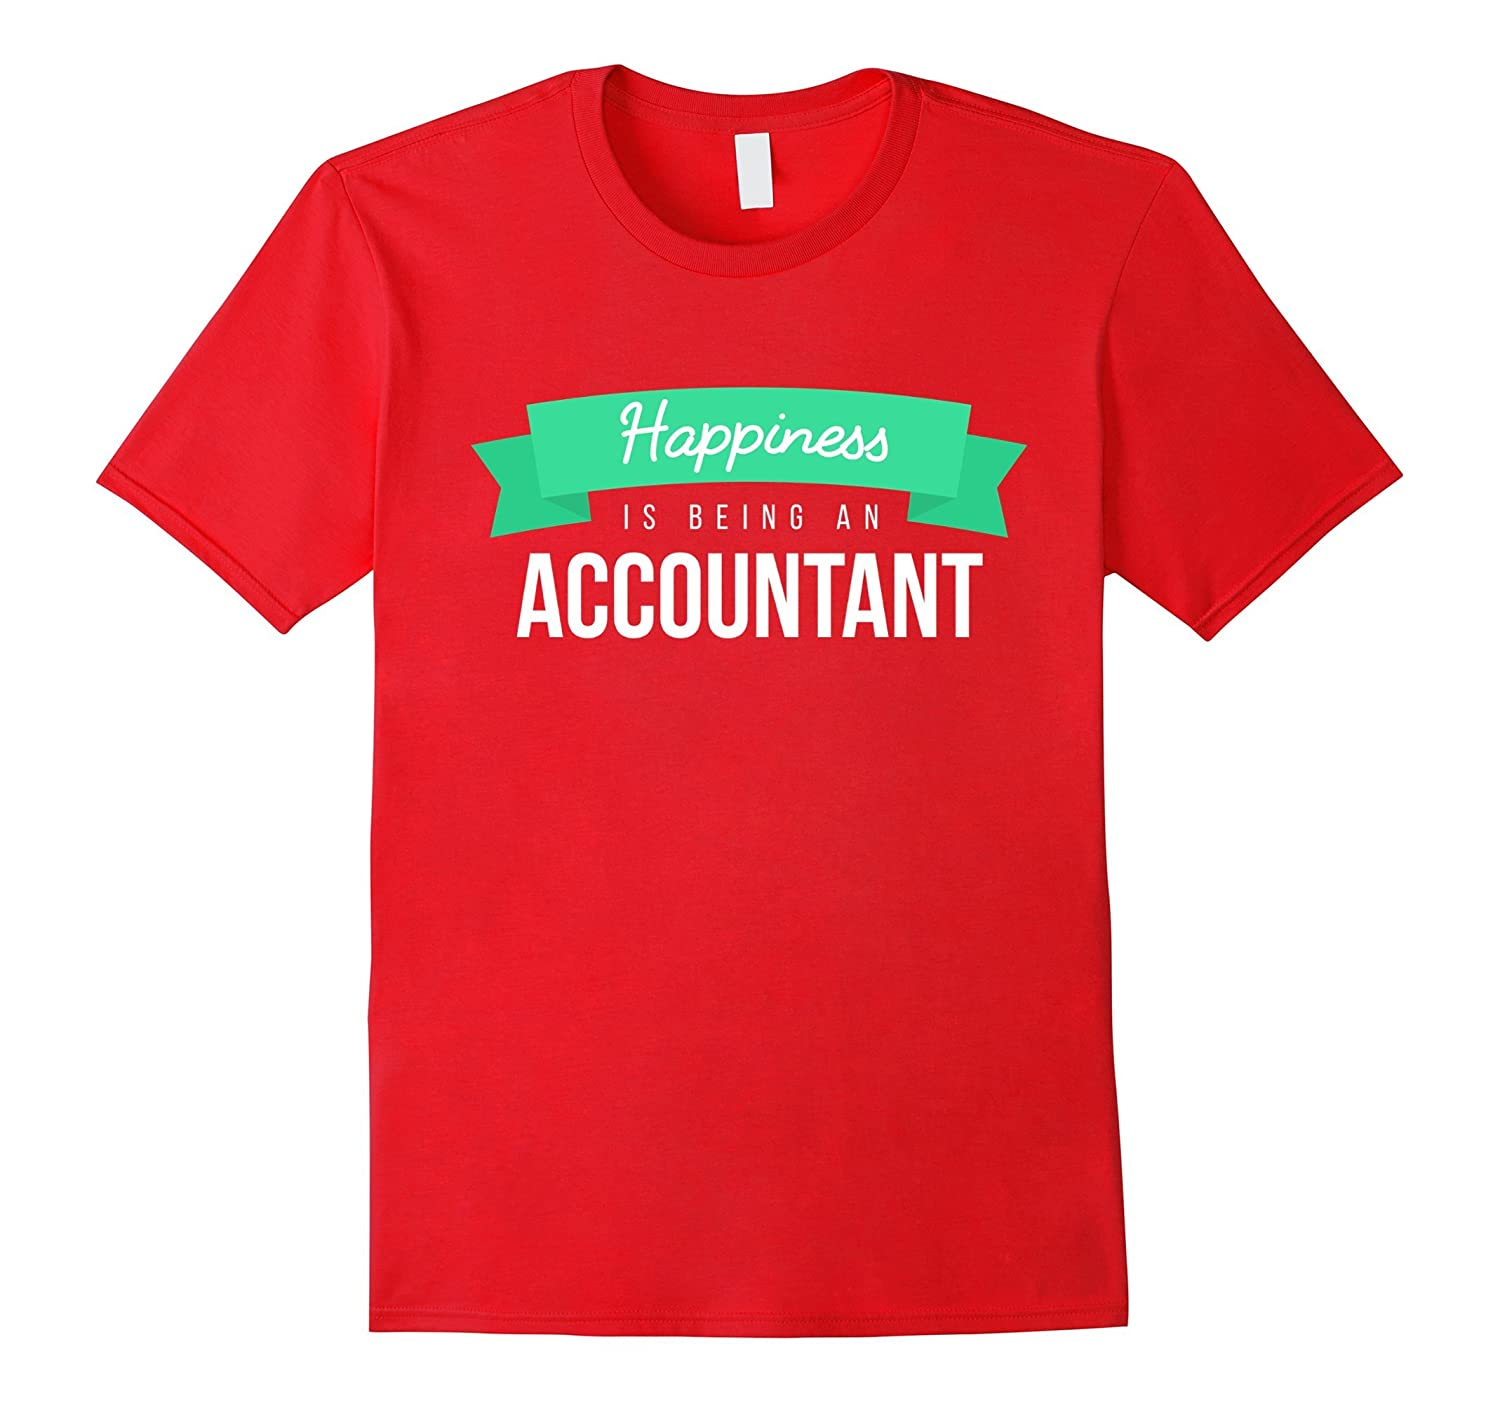 Accountant T-shirt - Happiness is being an accountant-FL